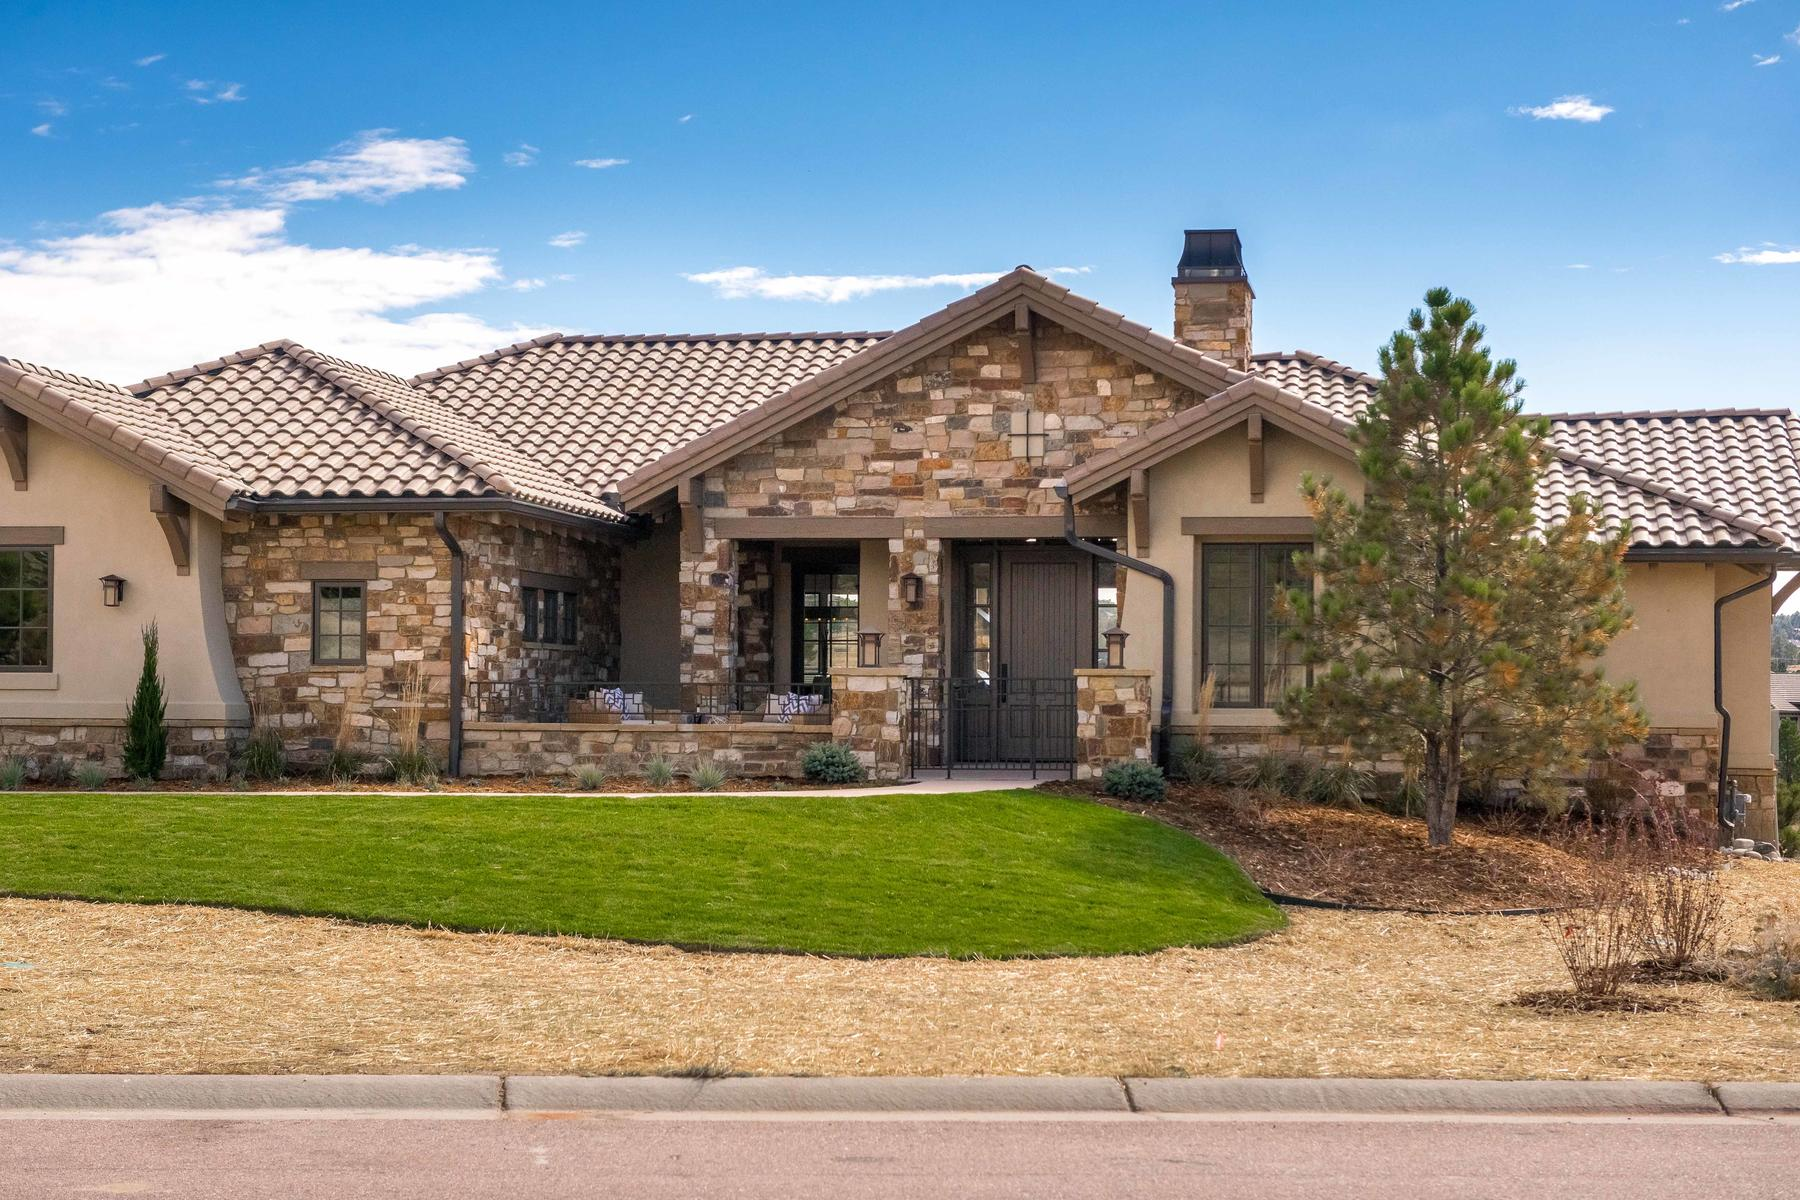 Single Family Home for Active at Pikes Peak view from this cozy lake front home! 7300 Prairie Star Ct Parker, Colorado 80134 United States